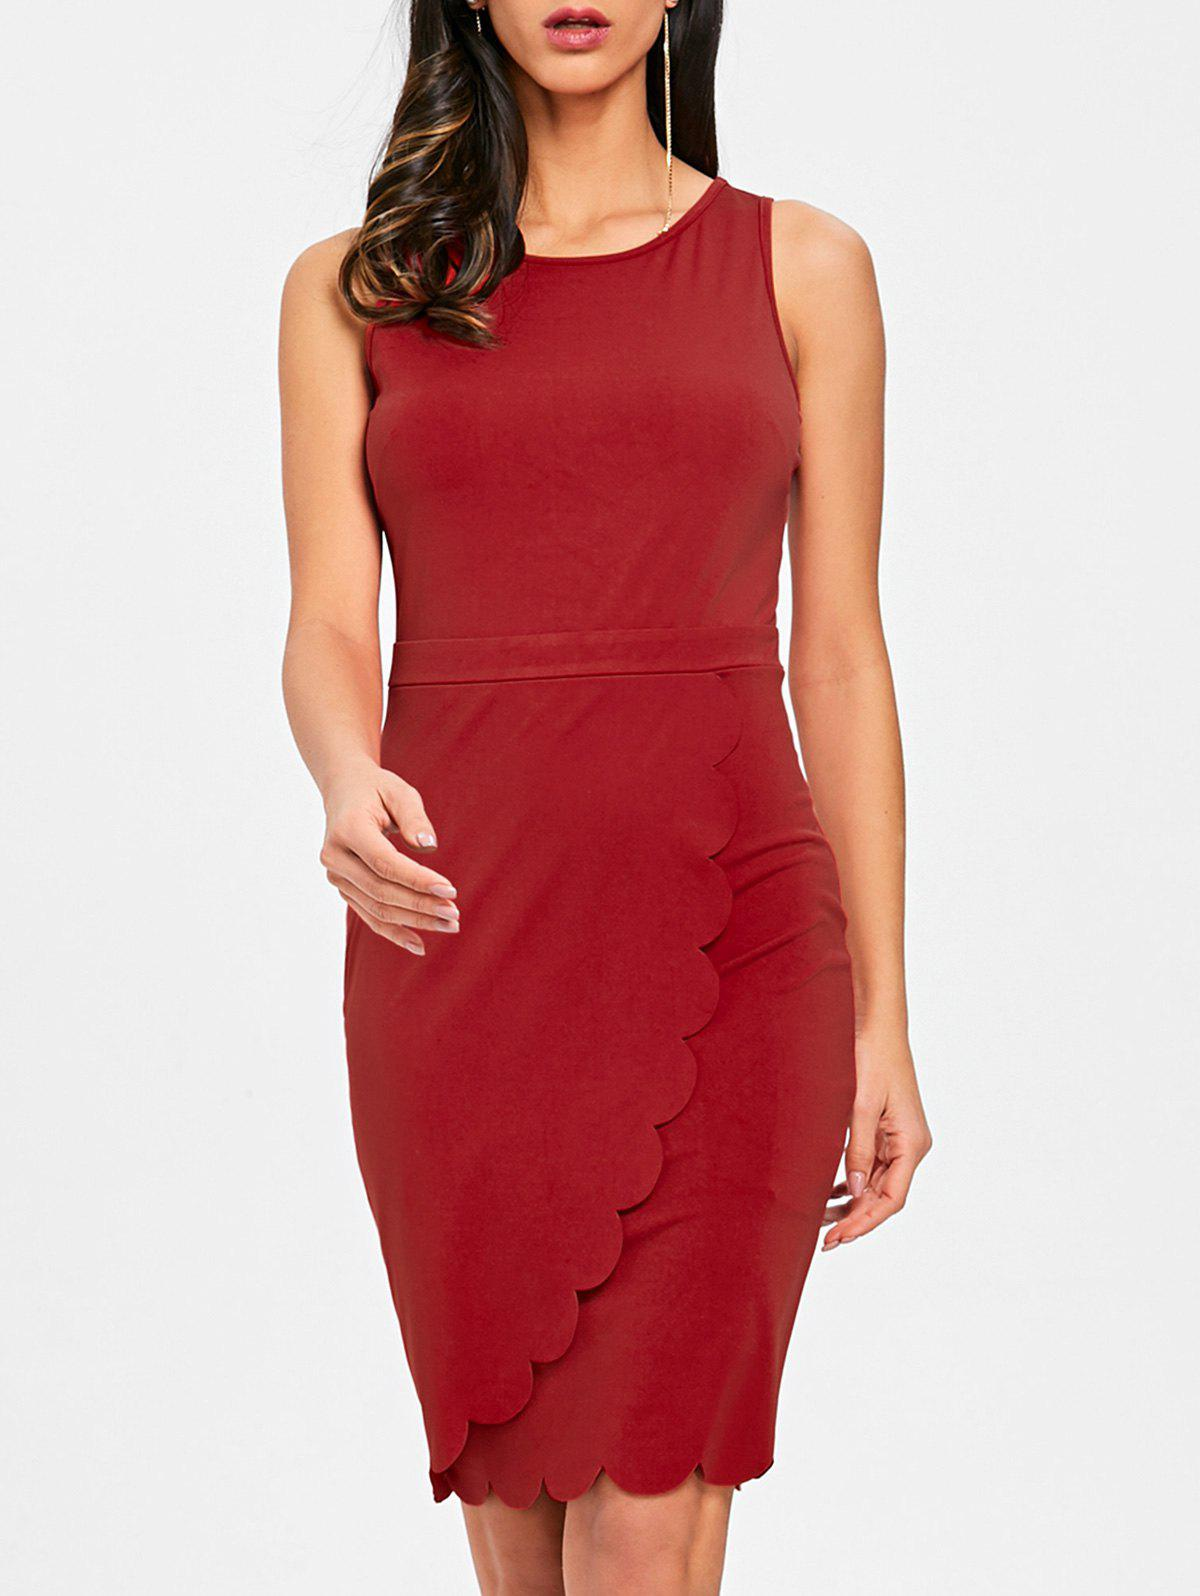 Sleeveless Scalloped Edge Bodycon Dress - RED M